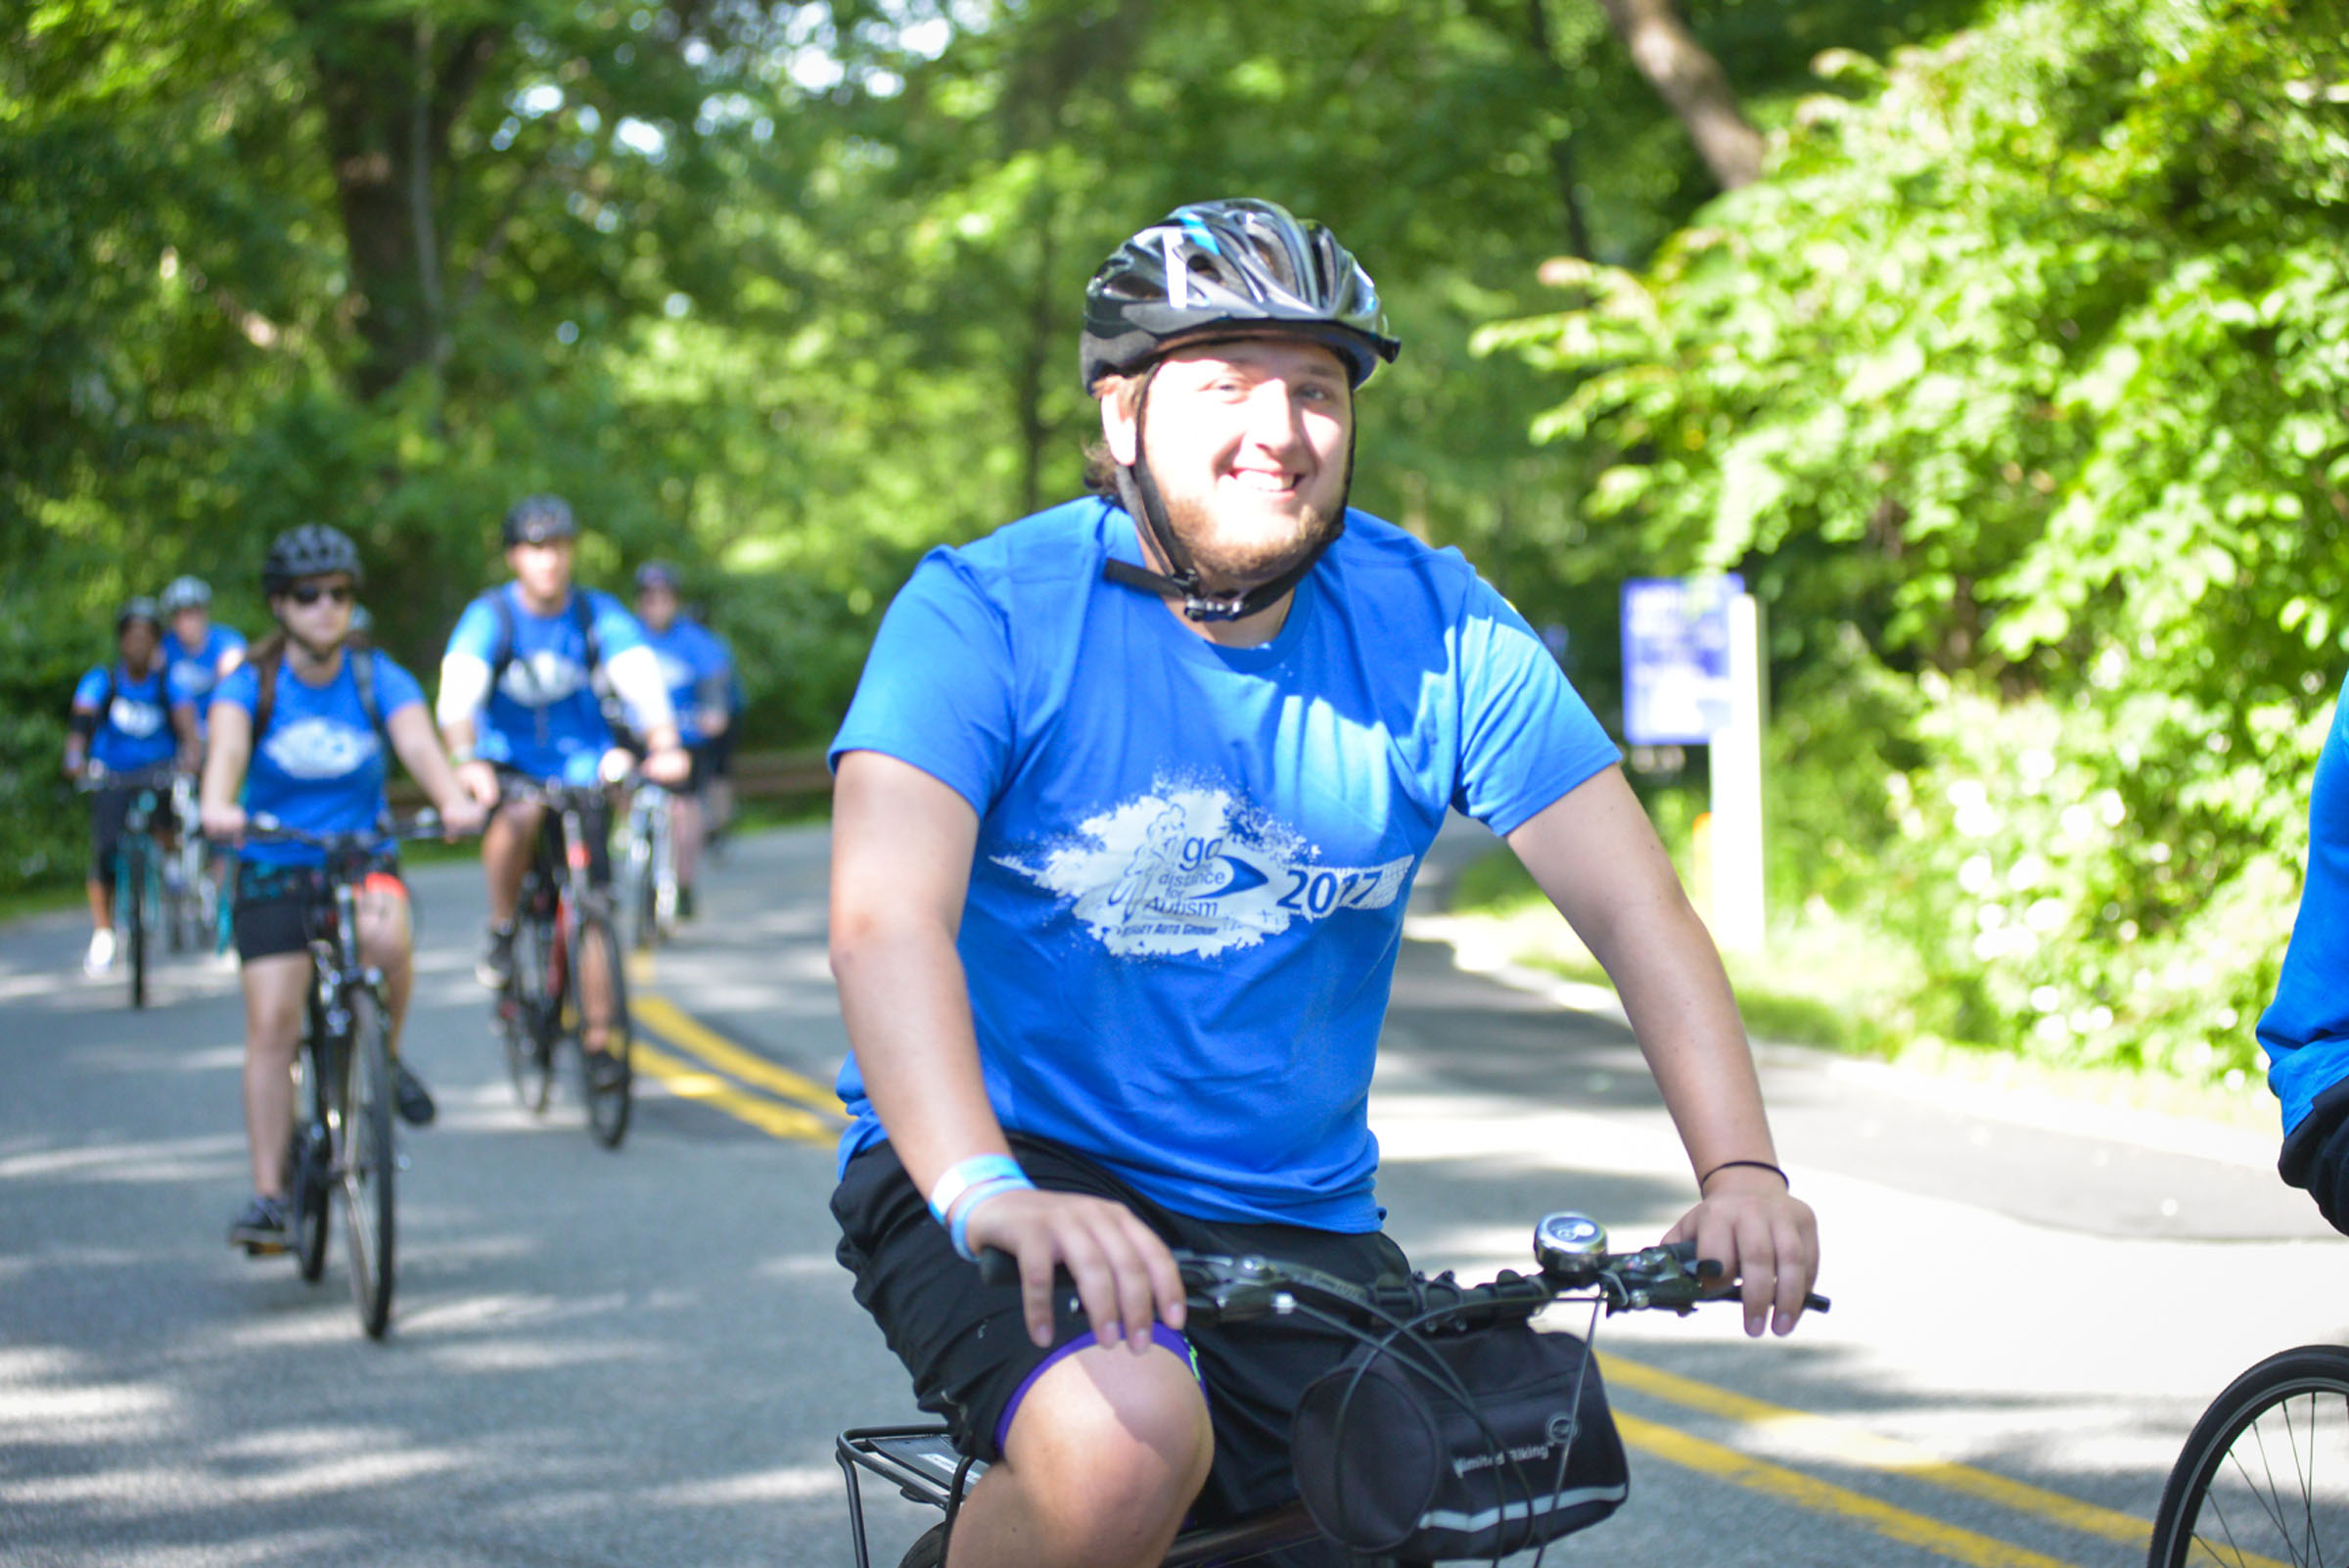 2017-06-04 GTD4A Charity Bike Ride - BCC - Paramus NJ-1967.jpg